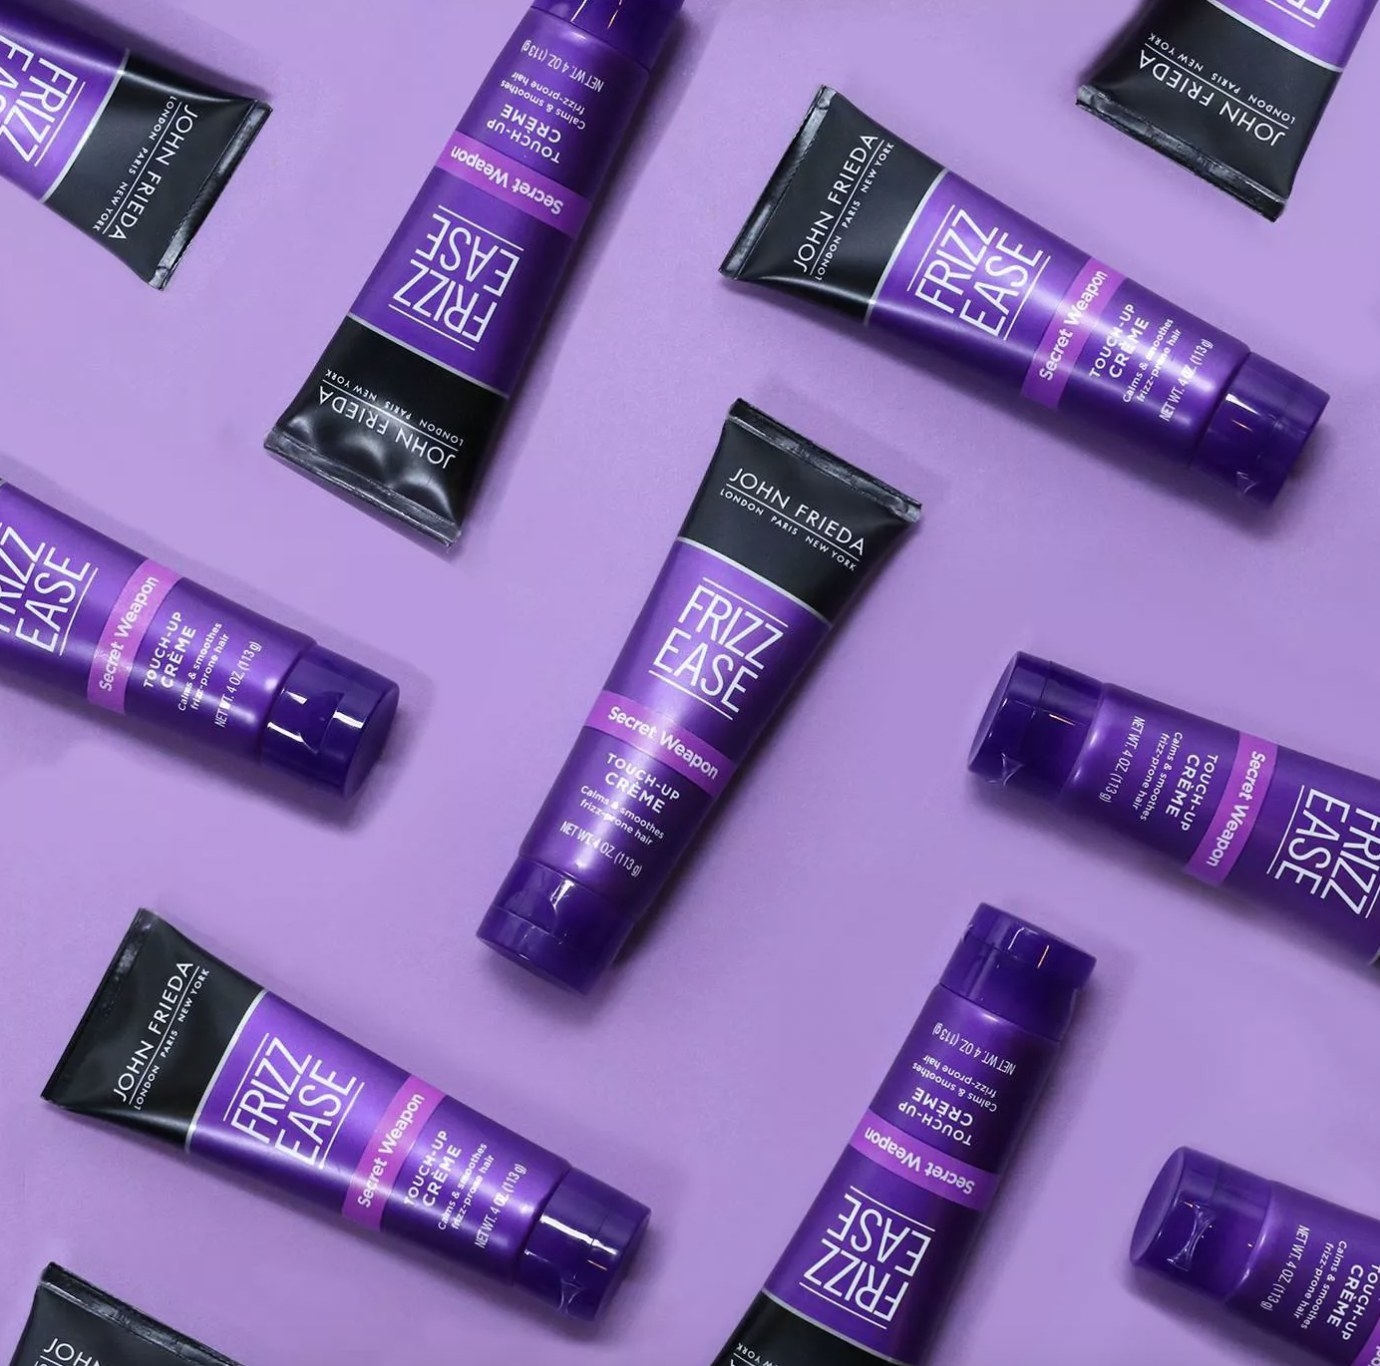 A set of tubes with hair creme